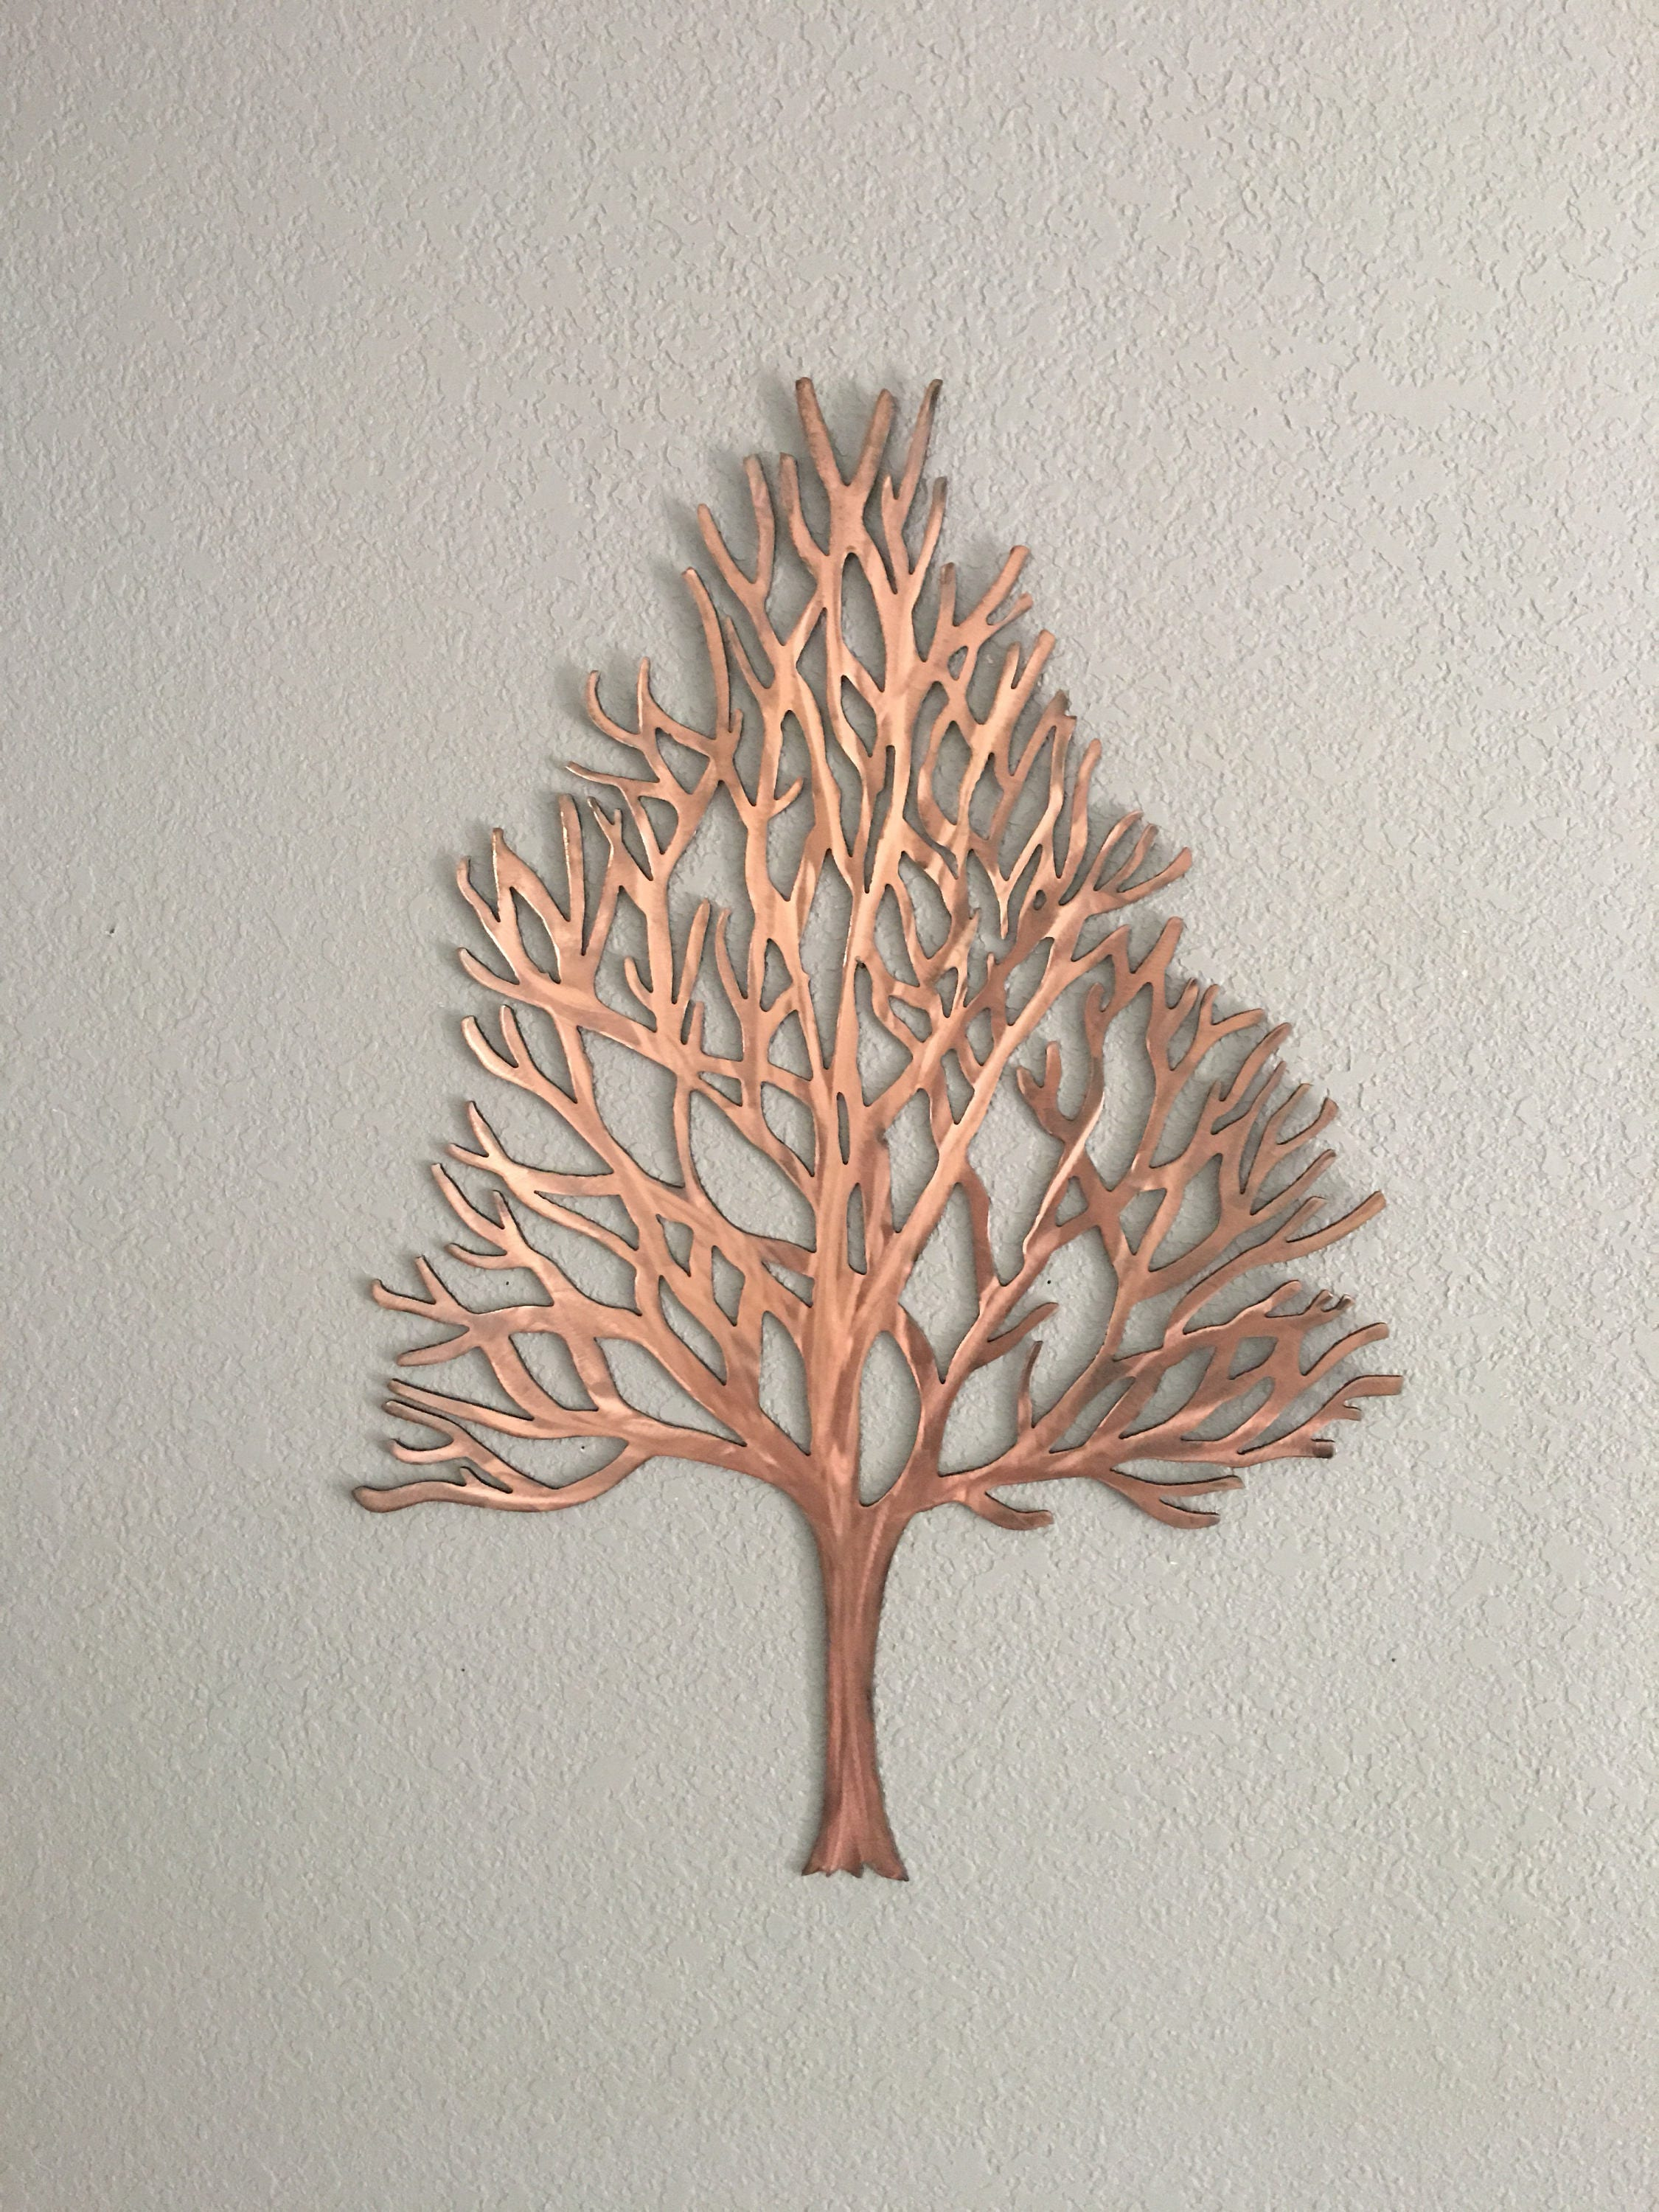 Metal Tree Wall Hanging Winter Maple Tree  Metal Tree  Home Decor  Wall Hanging  Metal Art